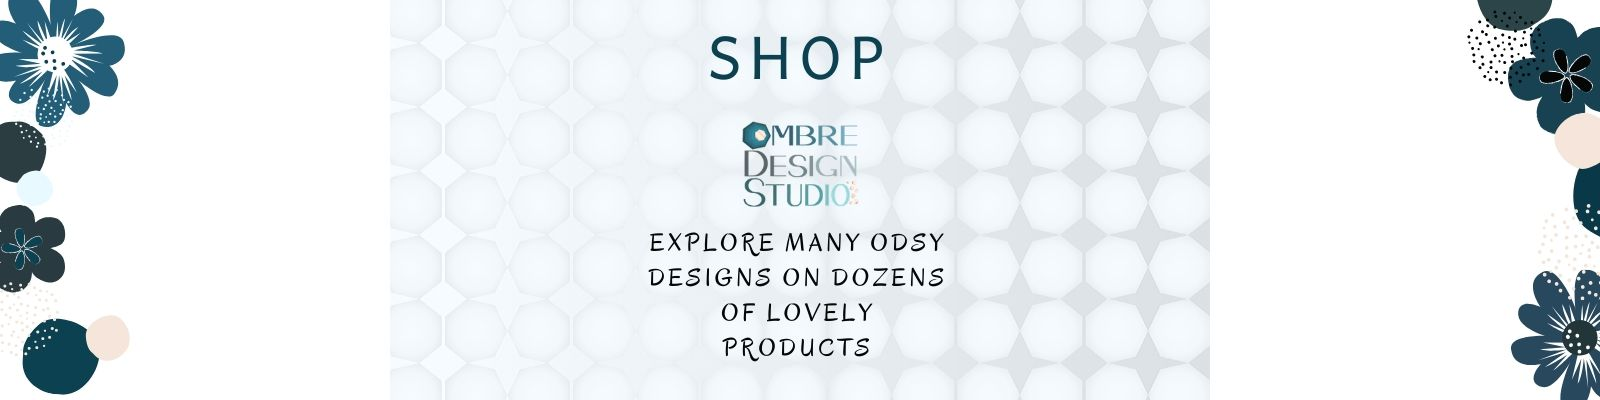 Shop lovely designs printed on products